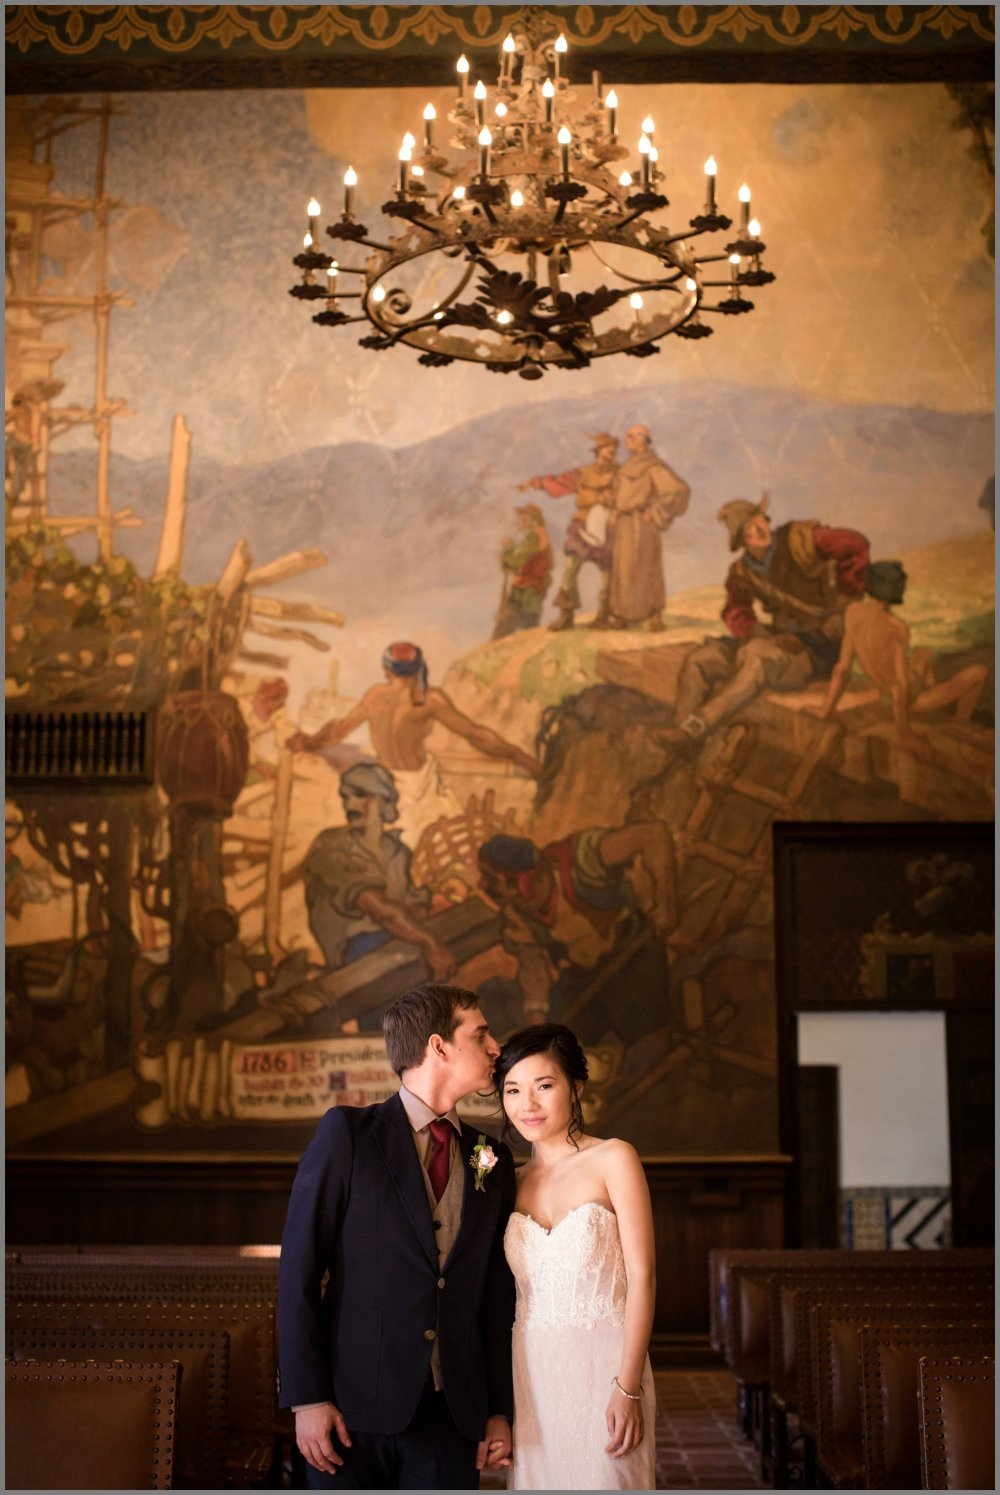 maria_gabriel_santa_barbara_courthouse_wedding_elopement_by_cassia_karin_photography-6.jpg